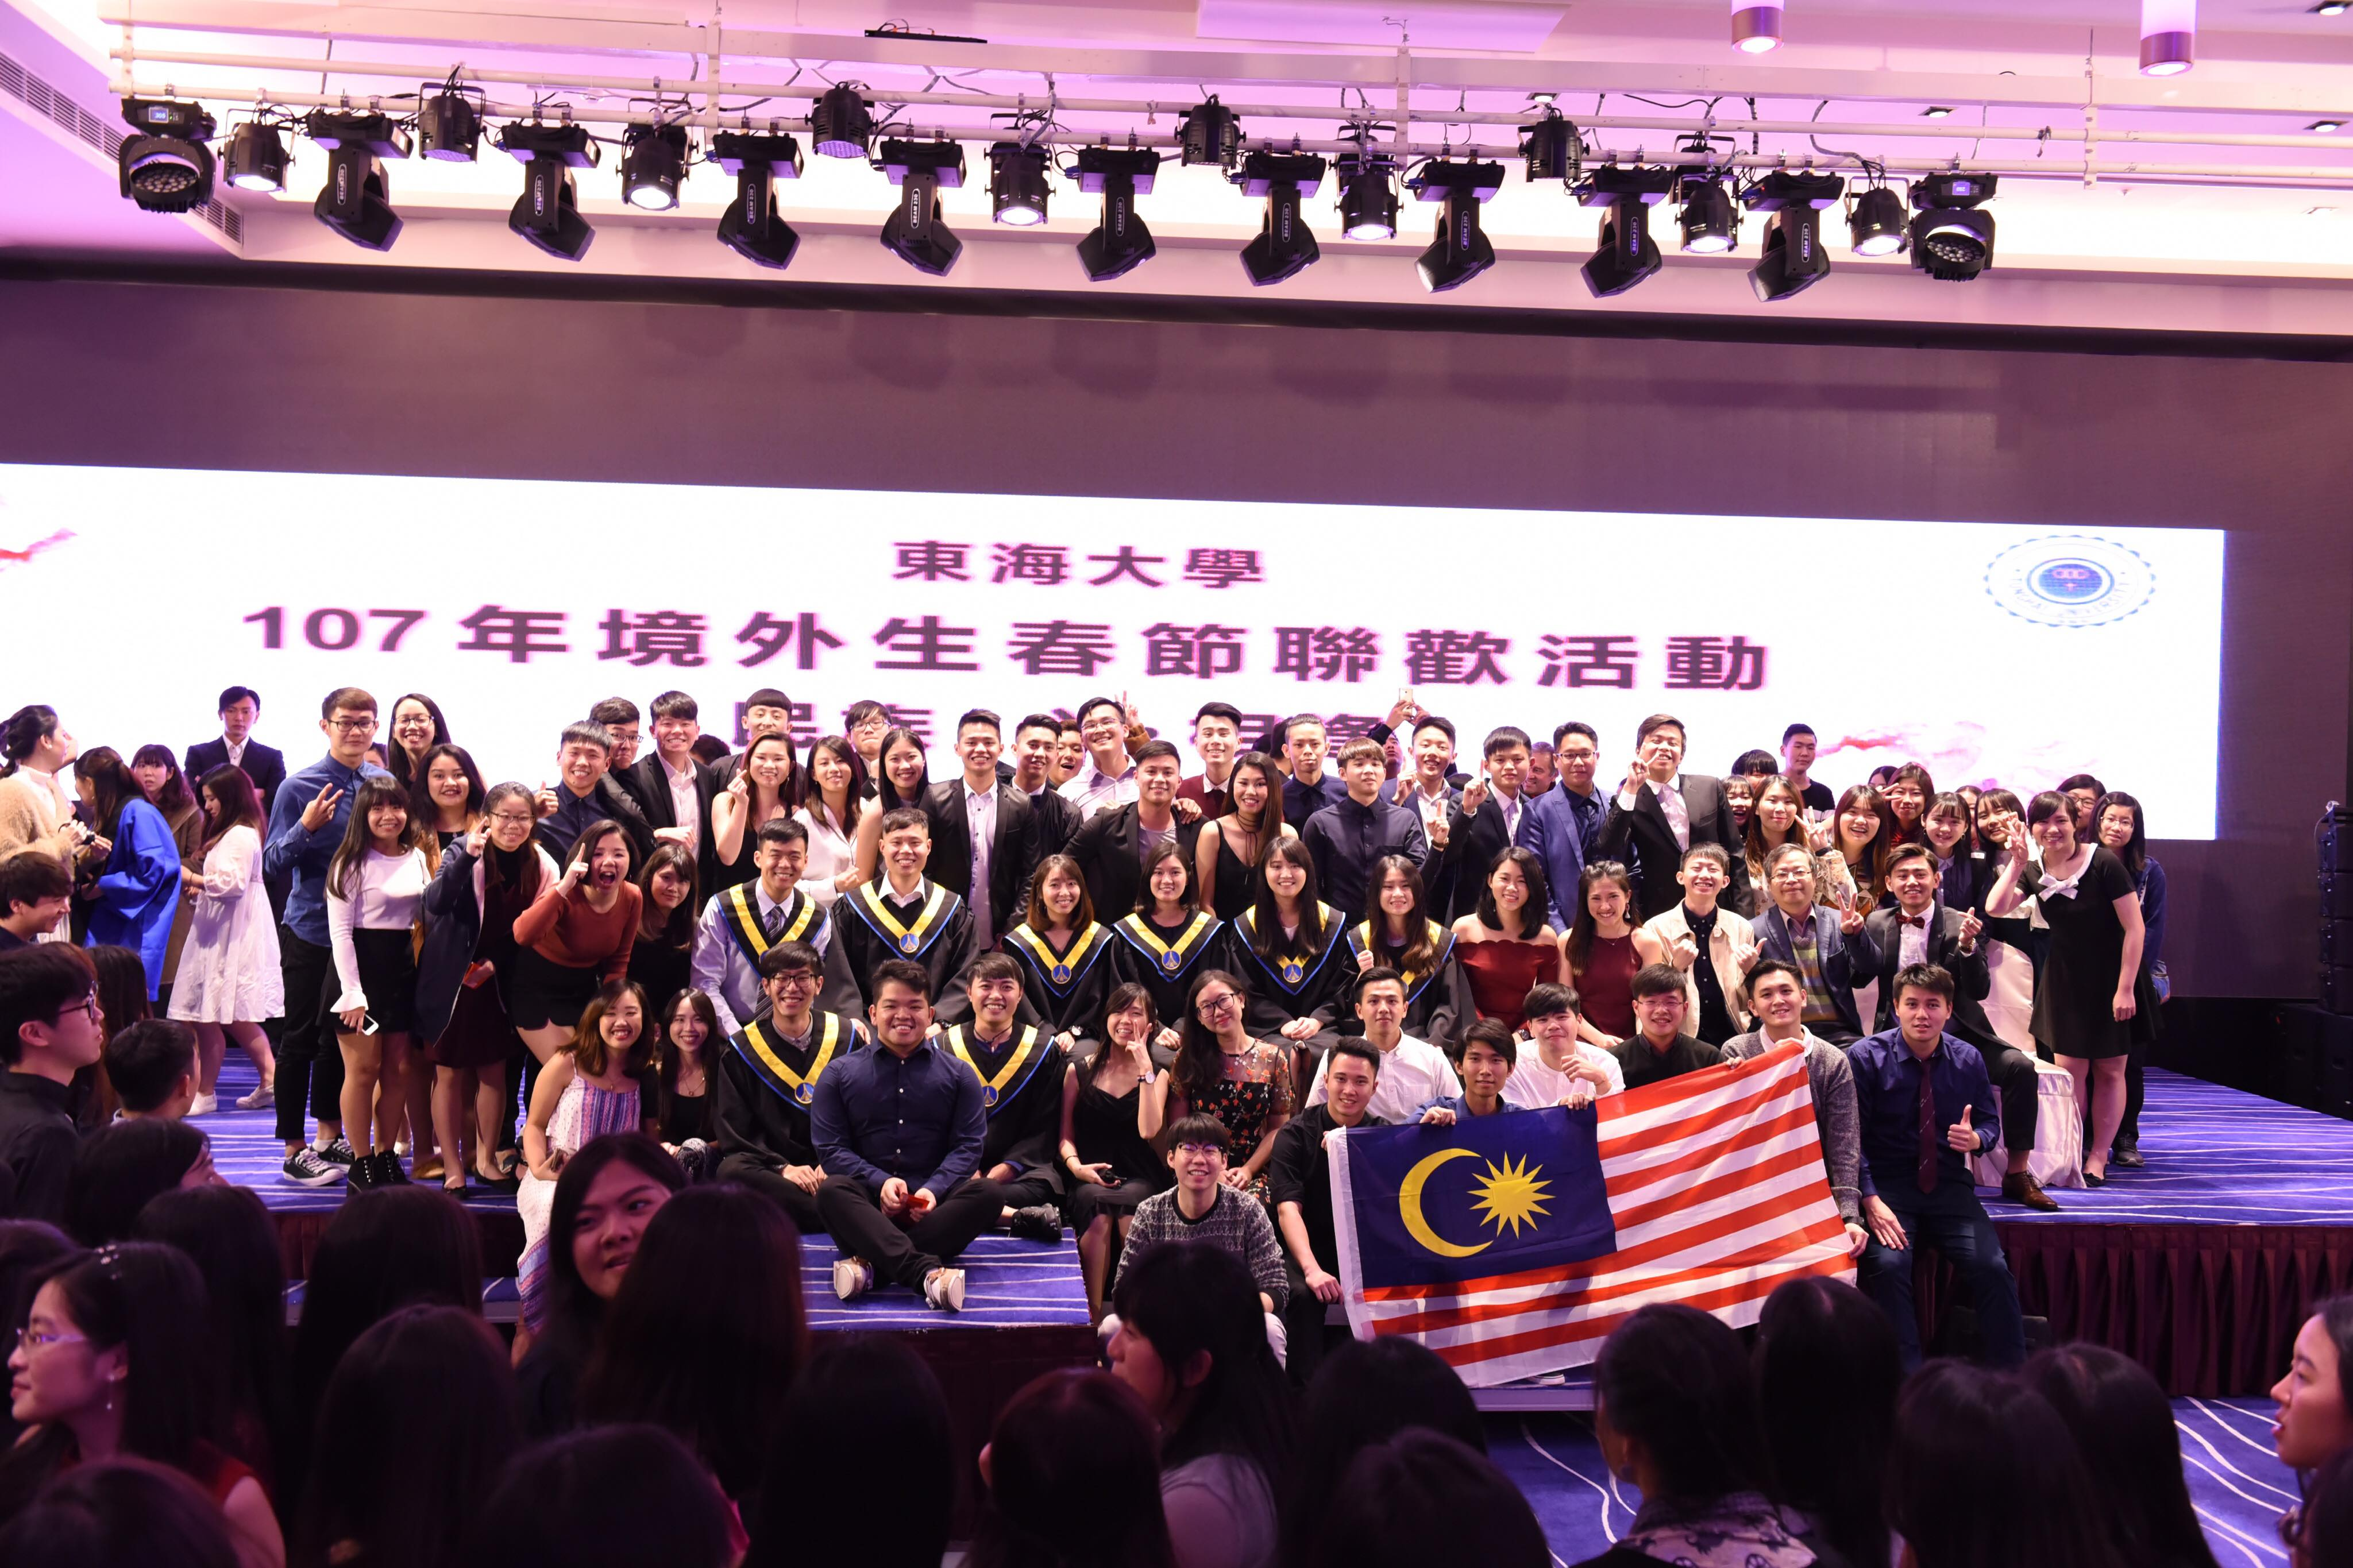 Group photo of Malaysia Students Association